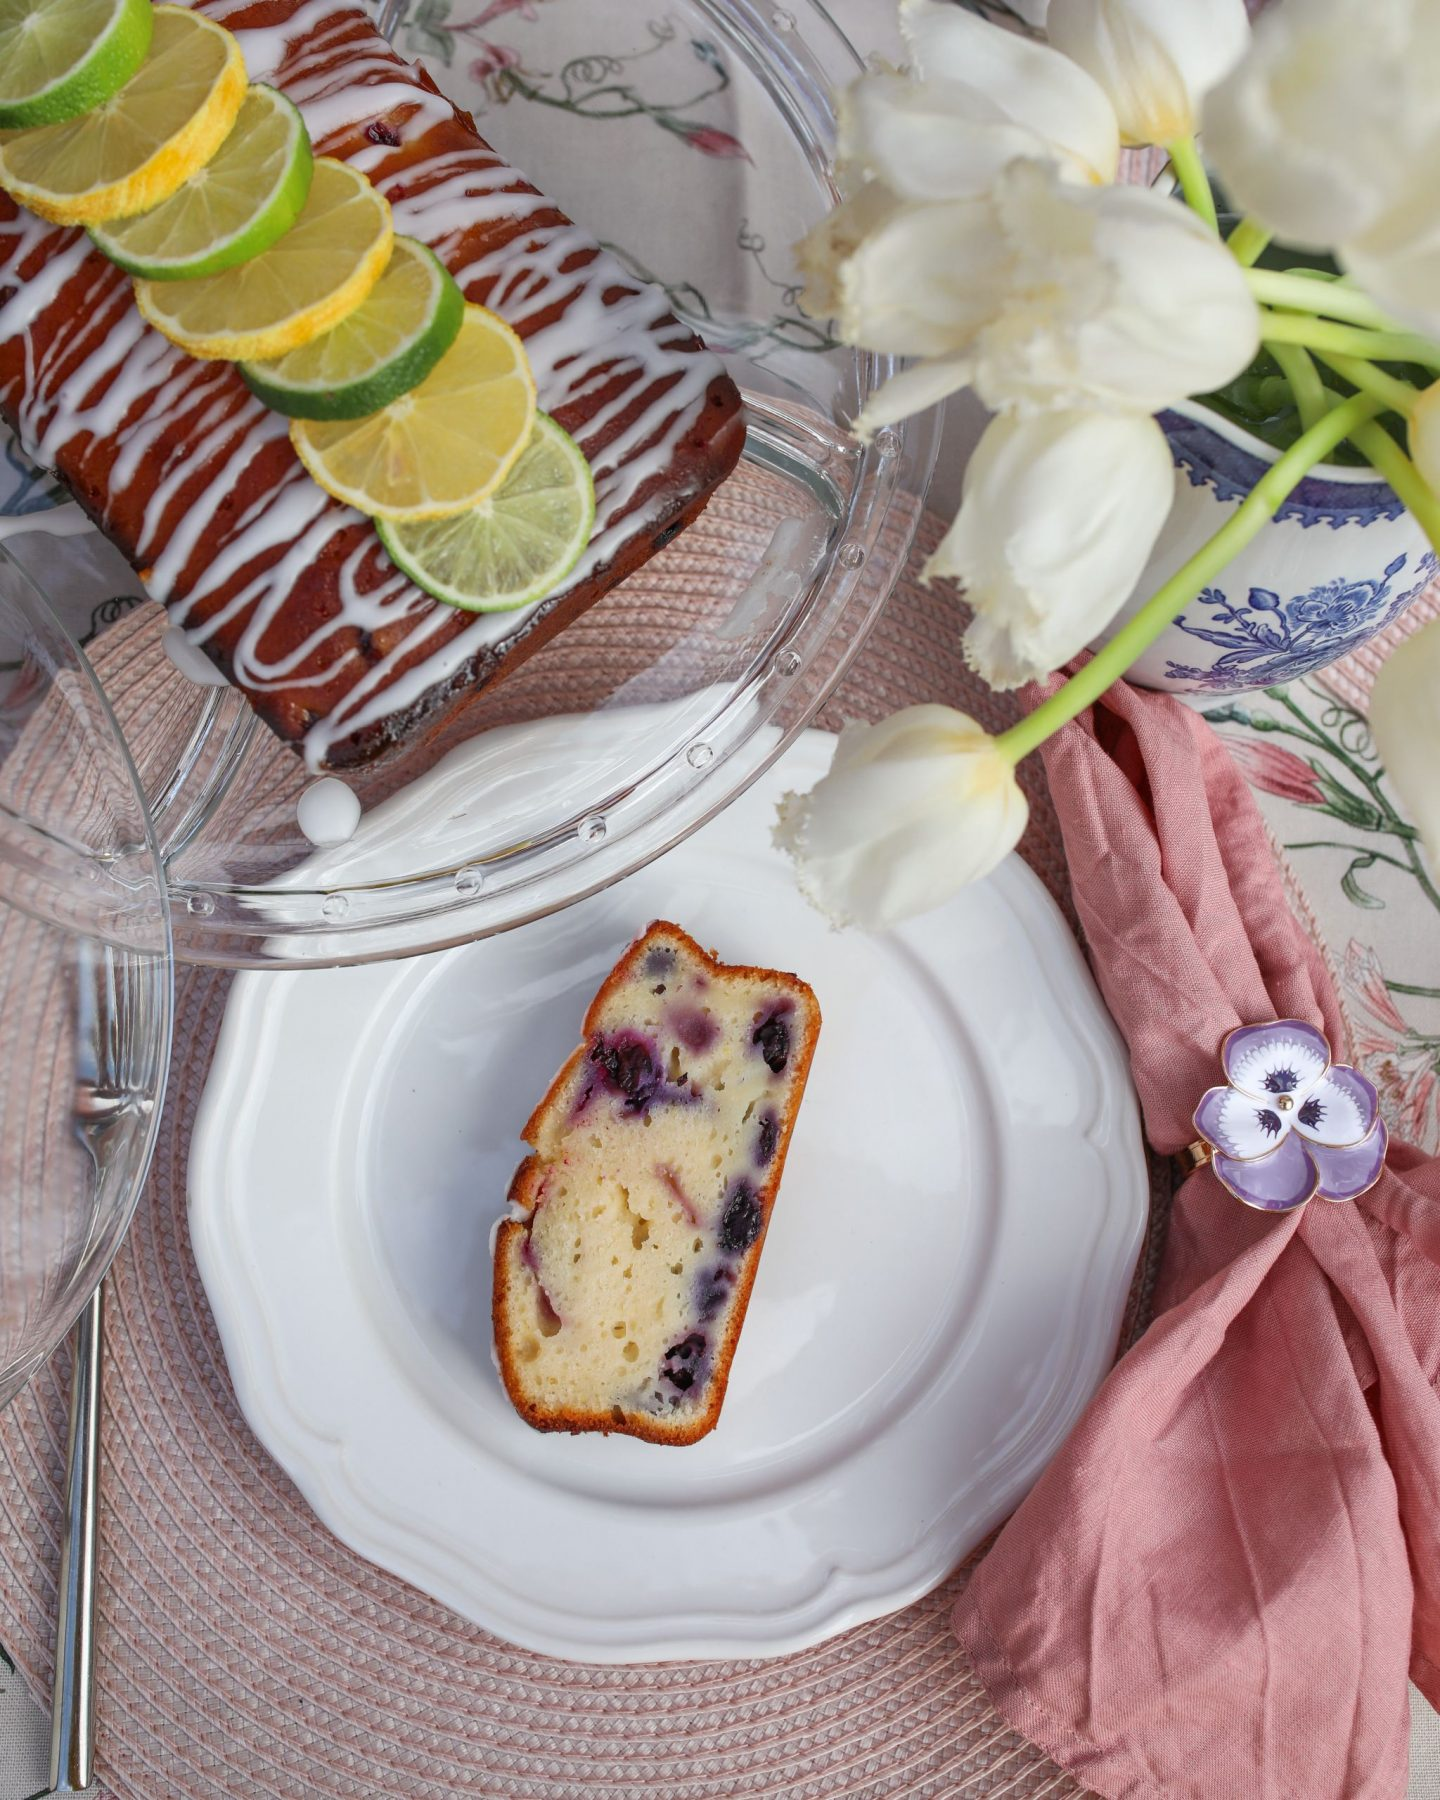 Iced Lemon and Blueberry Drizzle Loaf Cake | Katie KALANCHOE